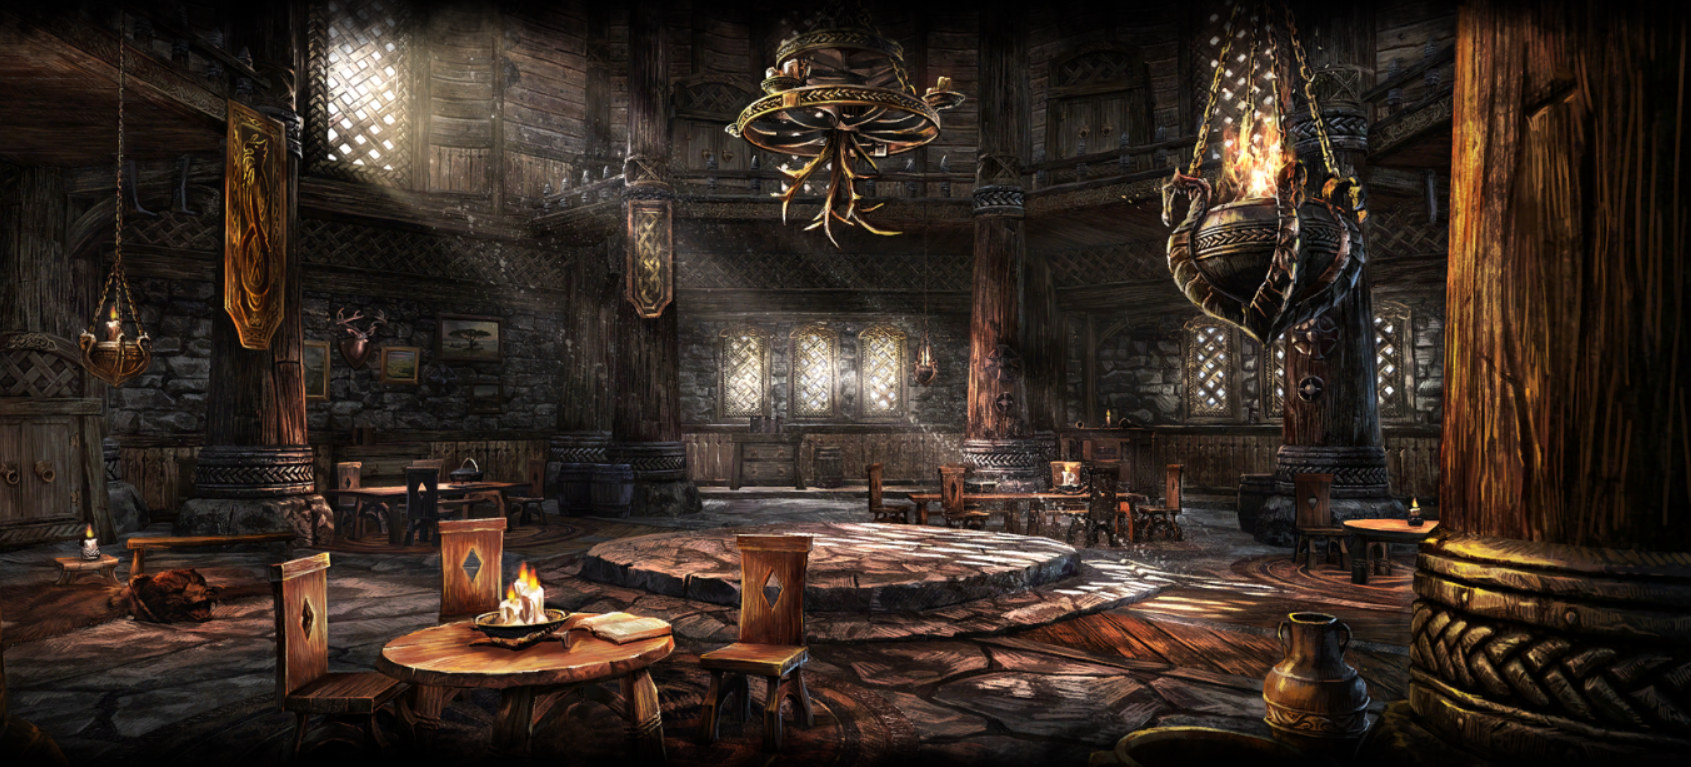 ESO housing loading screen - Hakkvild's High Hall | Elder Scrolls